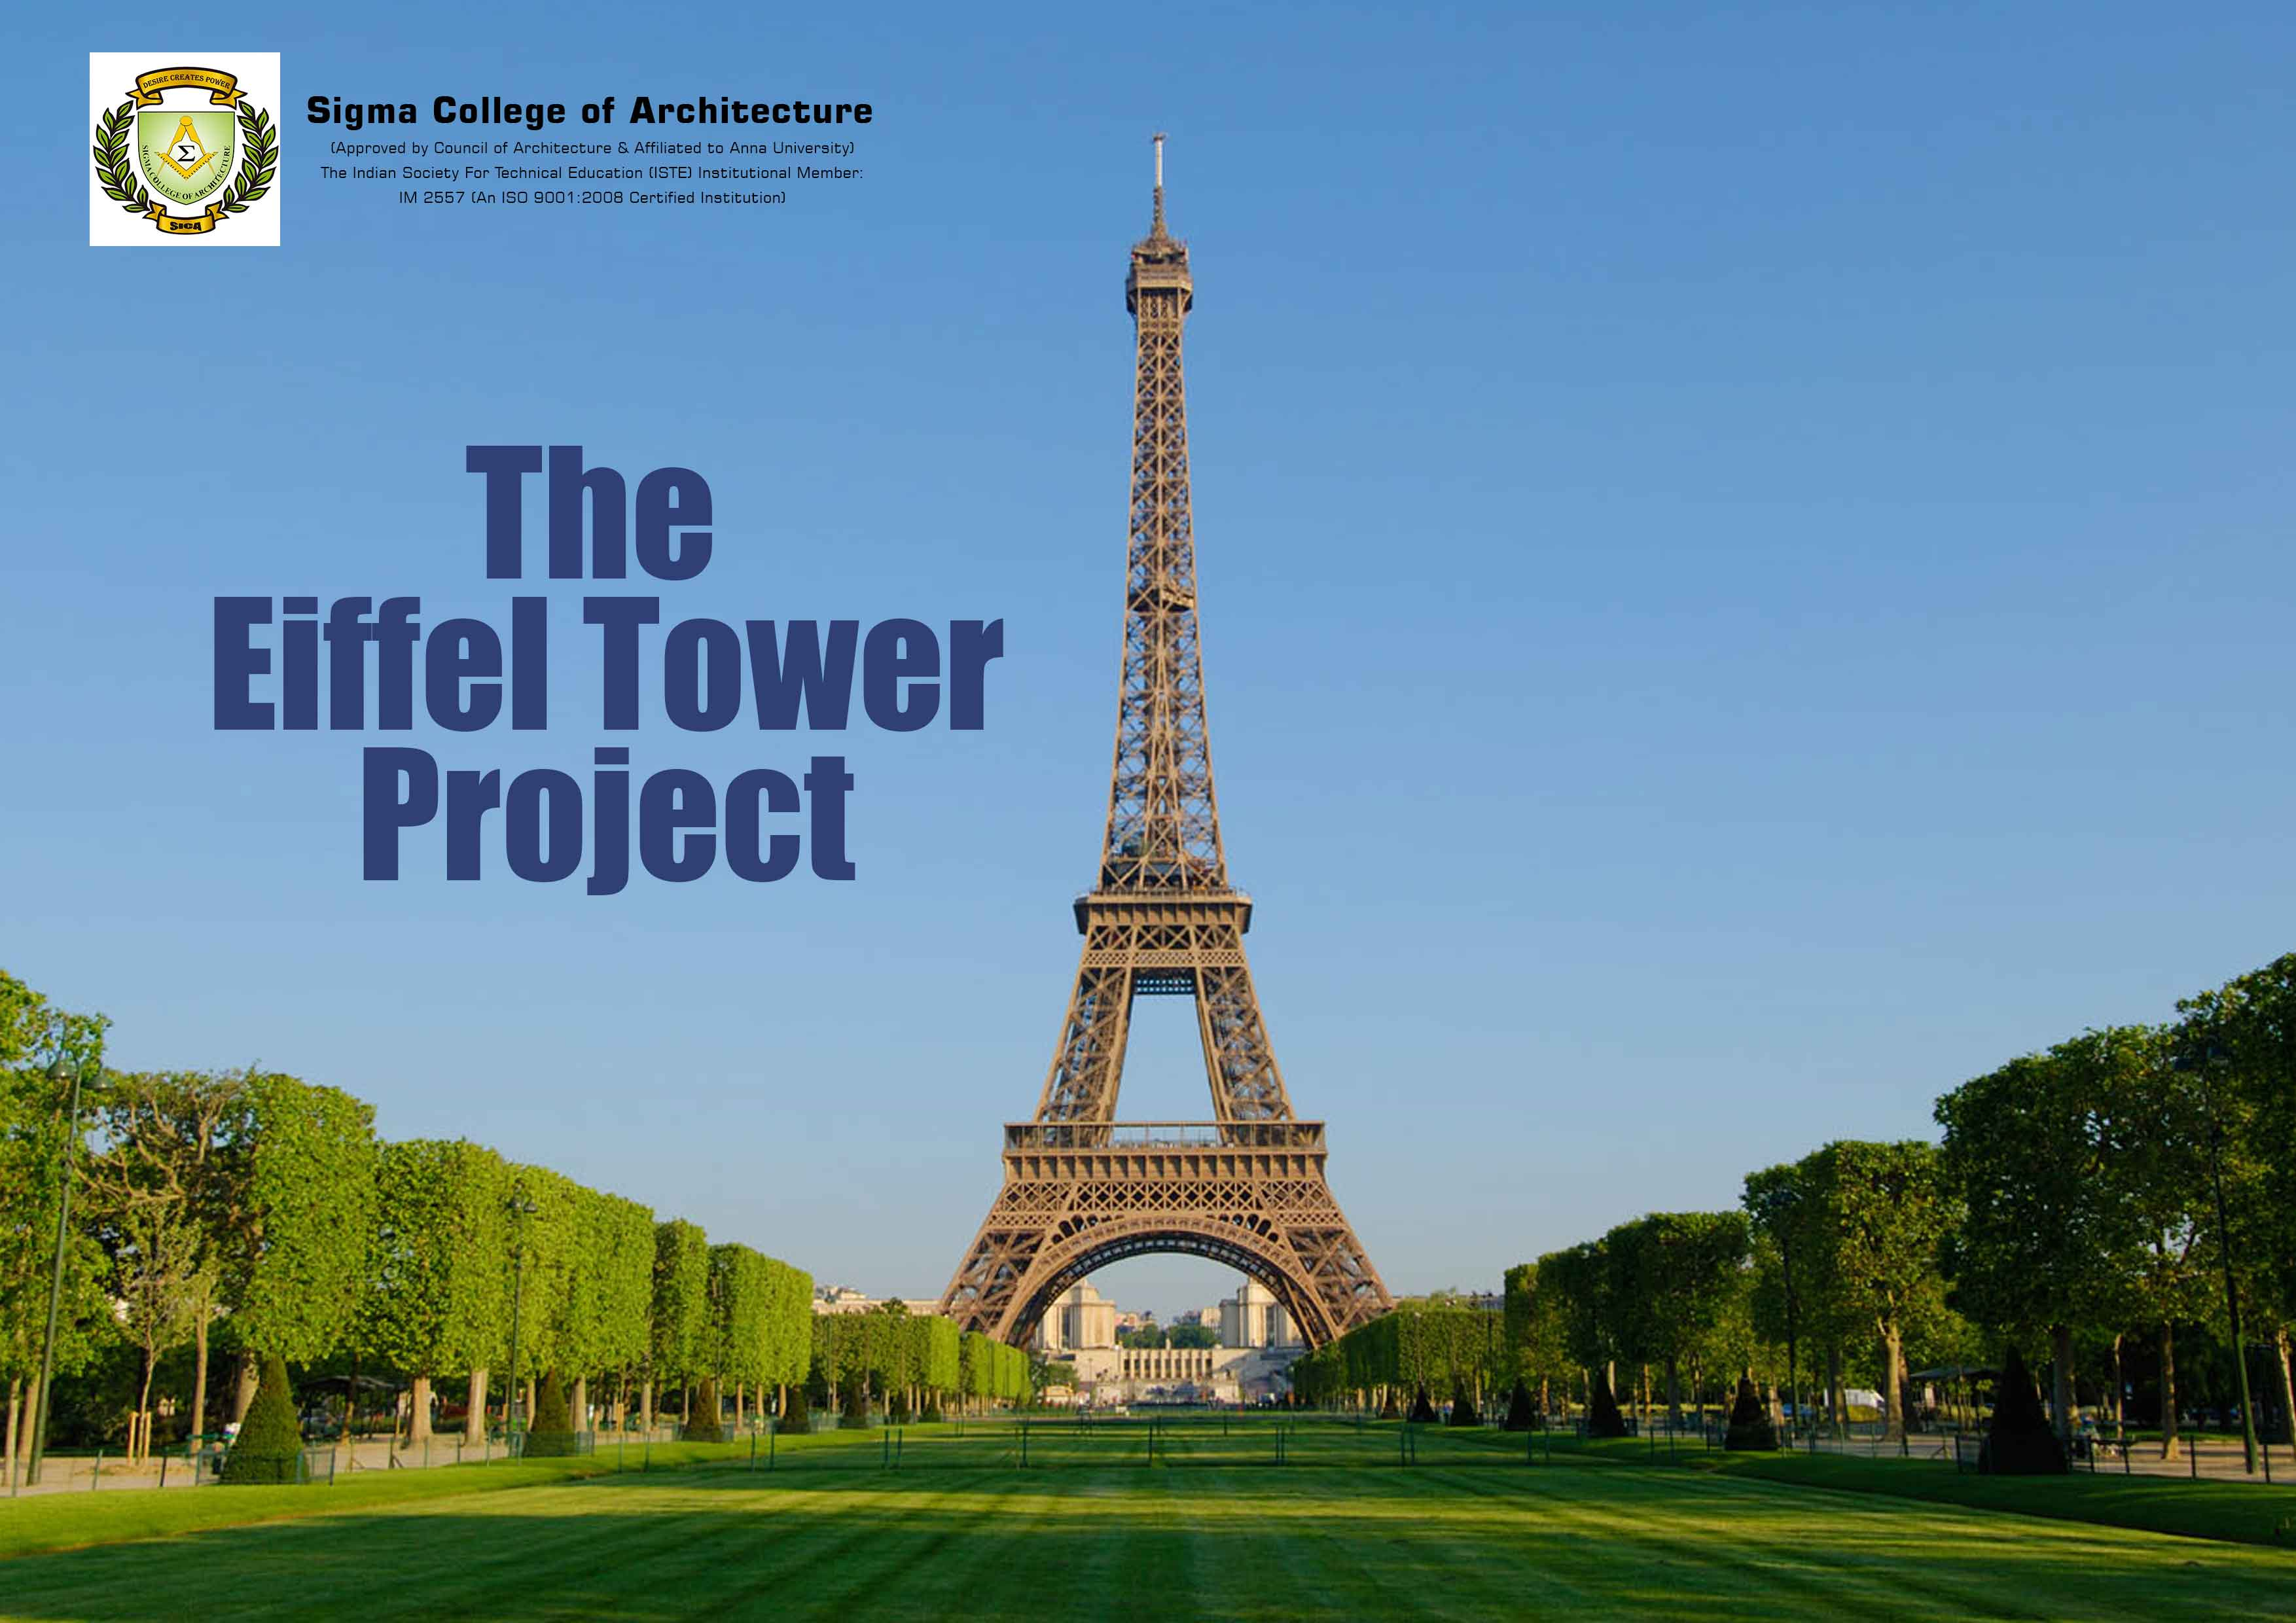 The Eiffel Tower Project